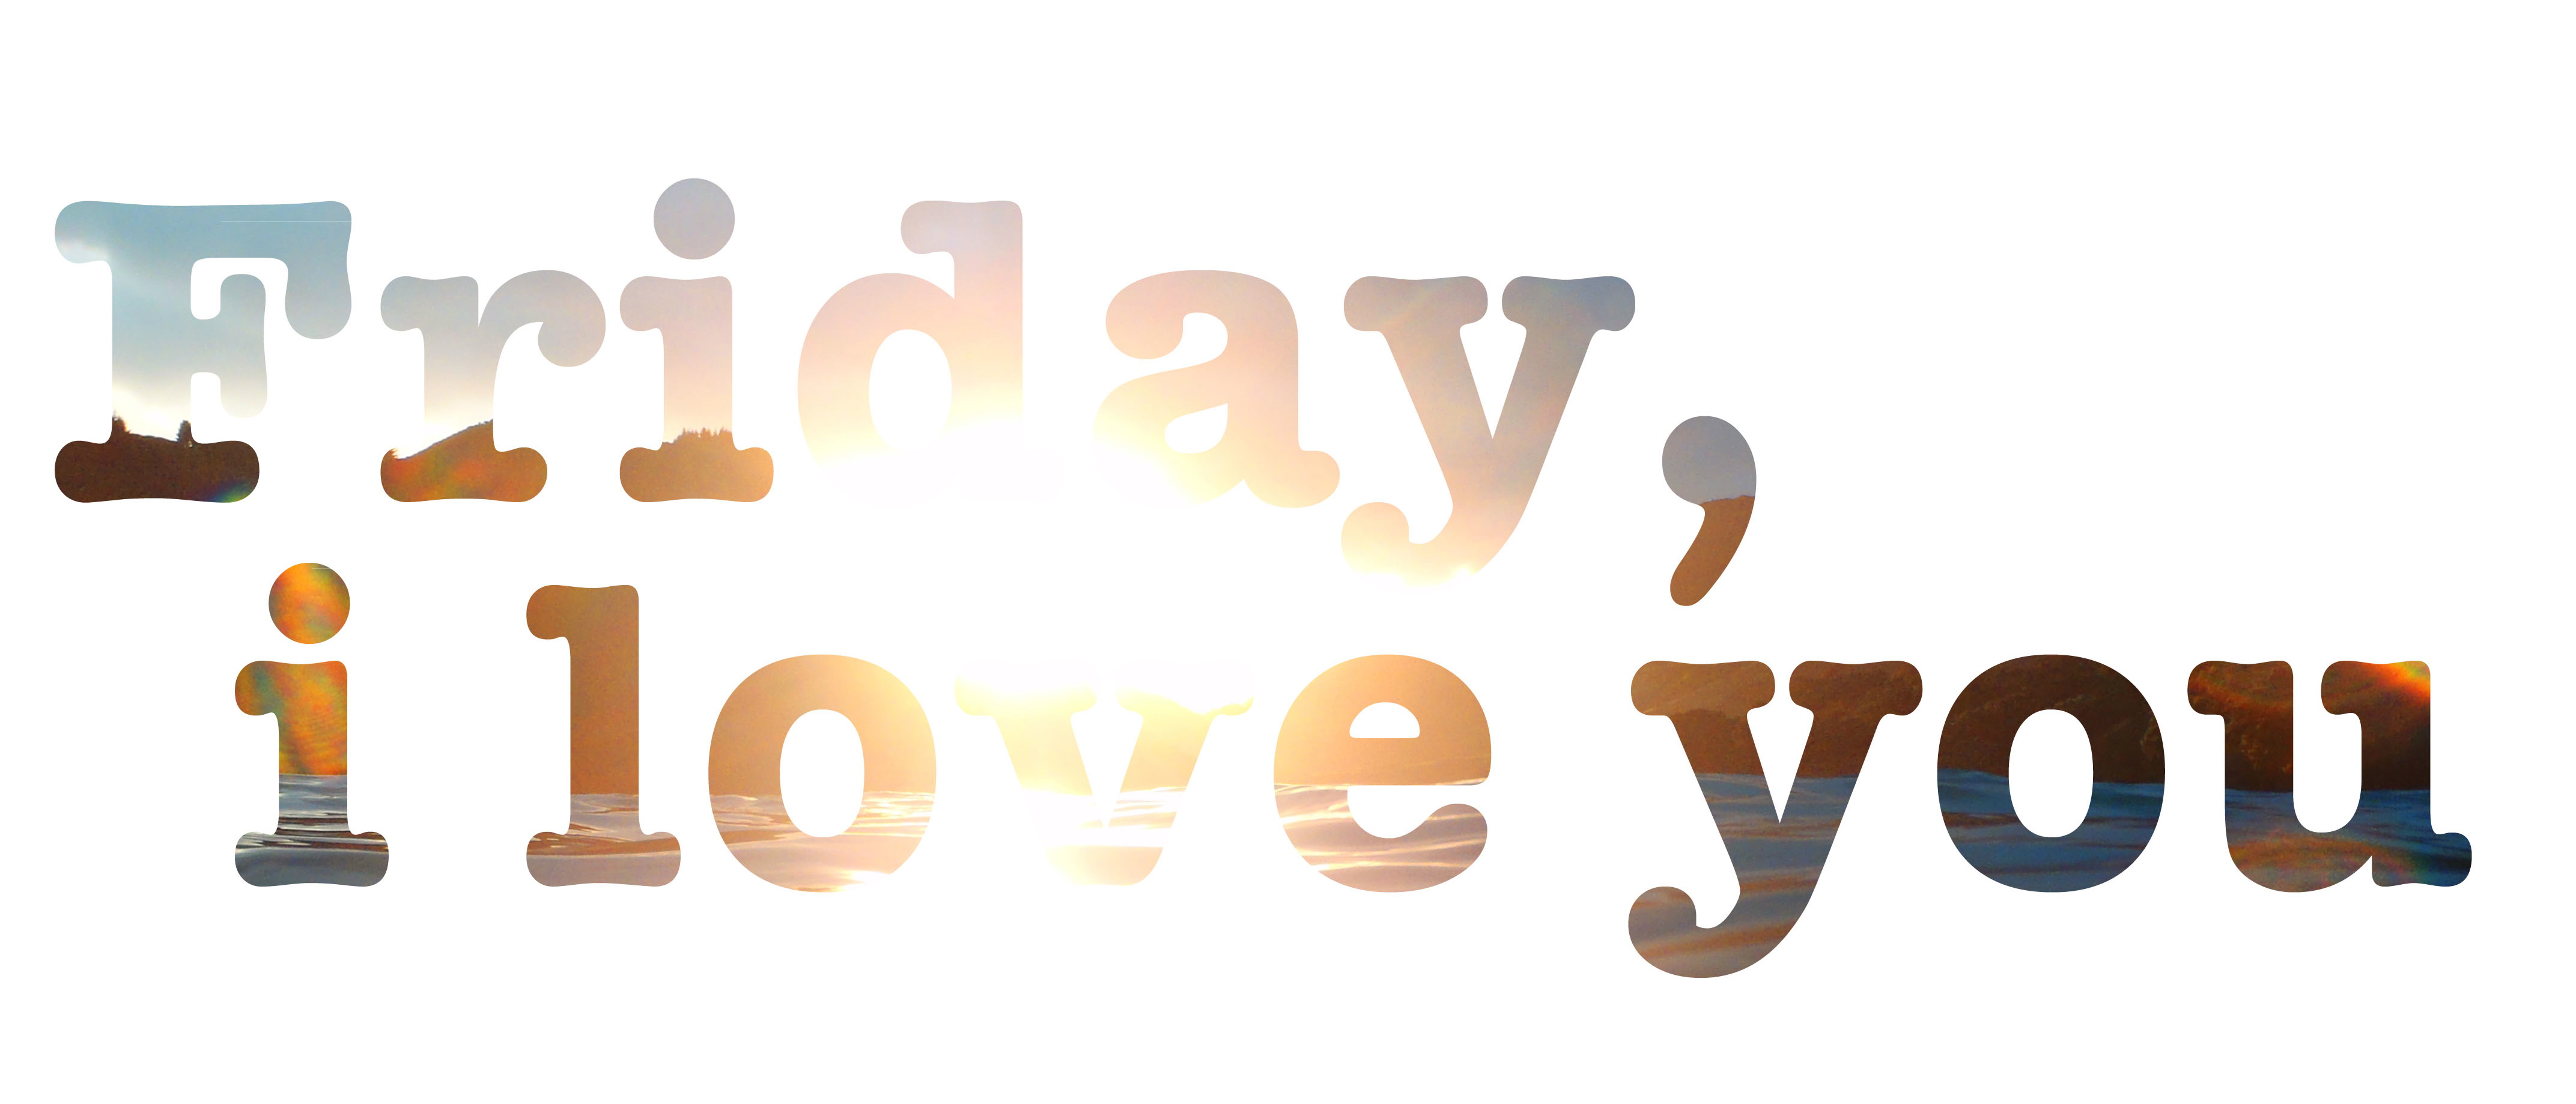 friday-i-love-you1.jpg